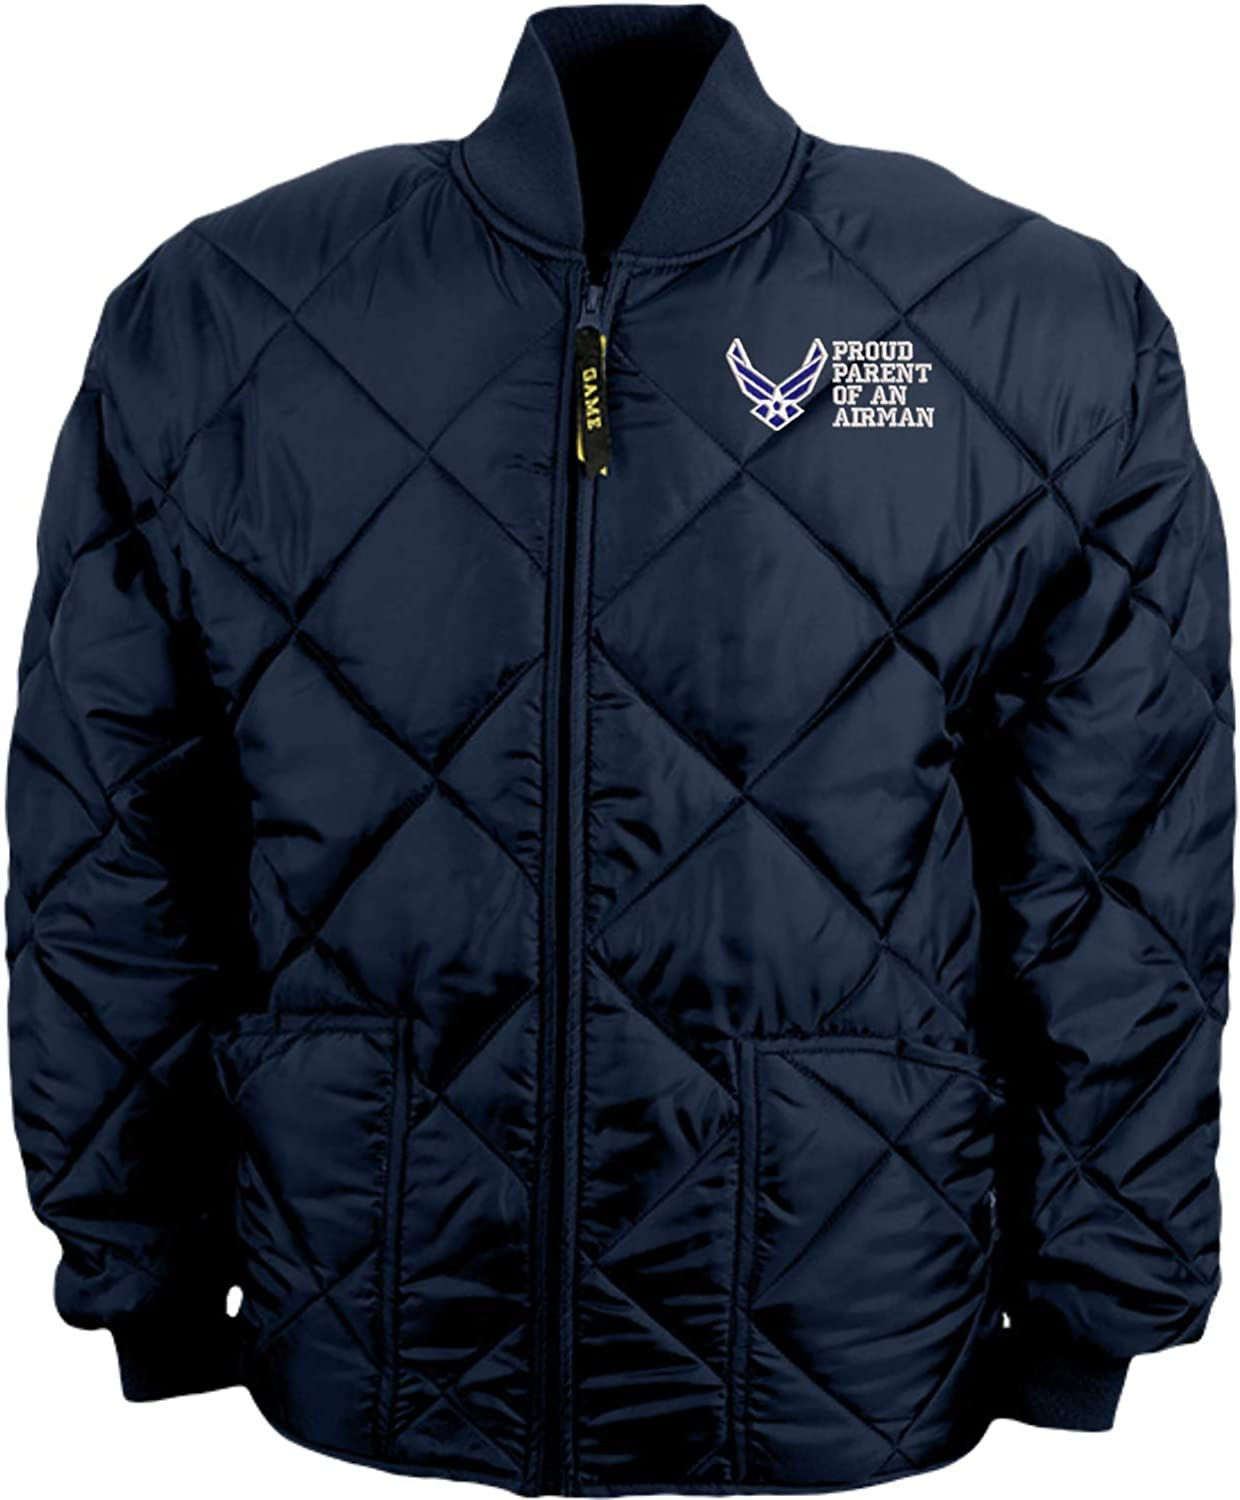 Proud Parent of an Airman U.S. Air Force Game Sportswear Bravest Jacket